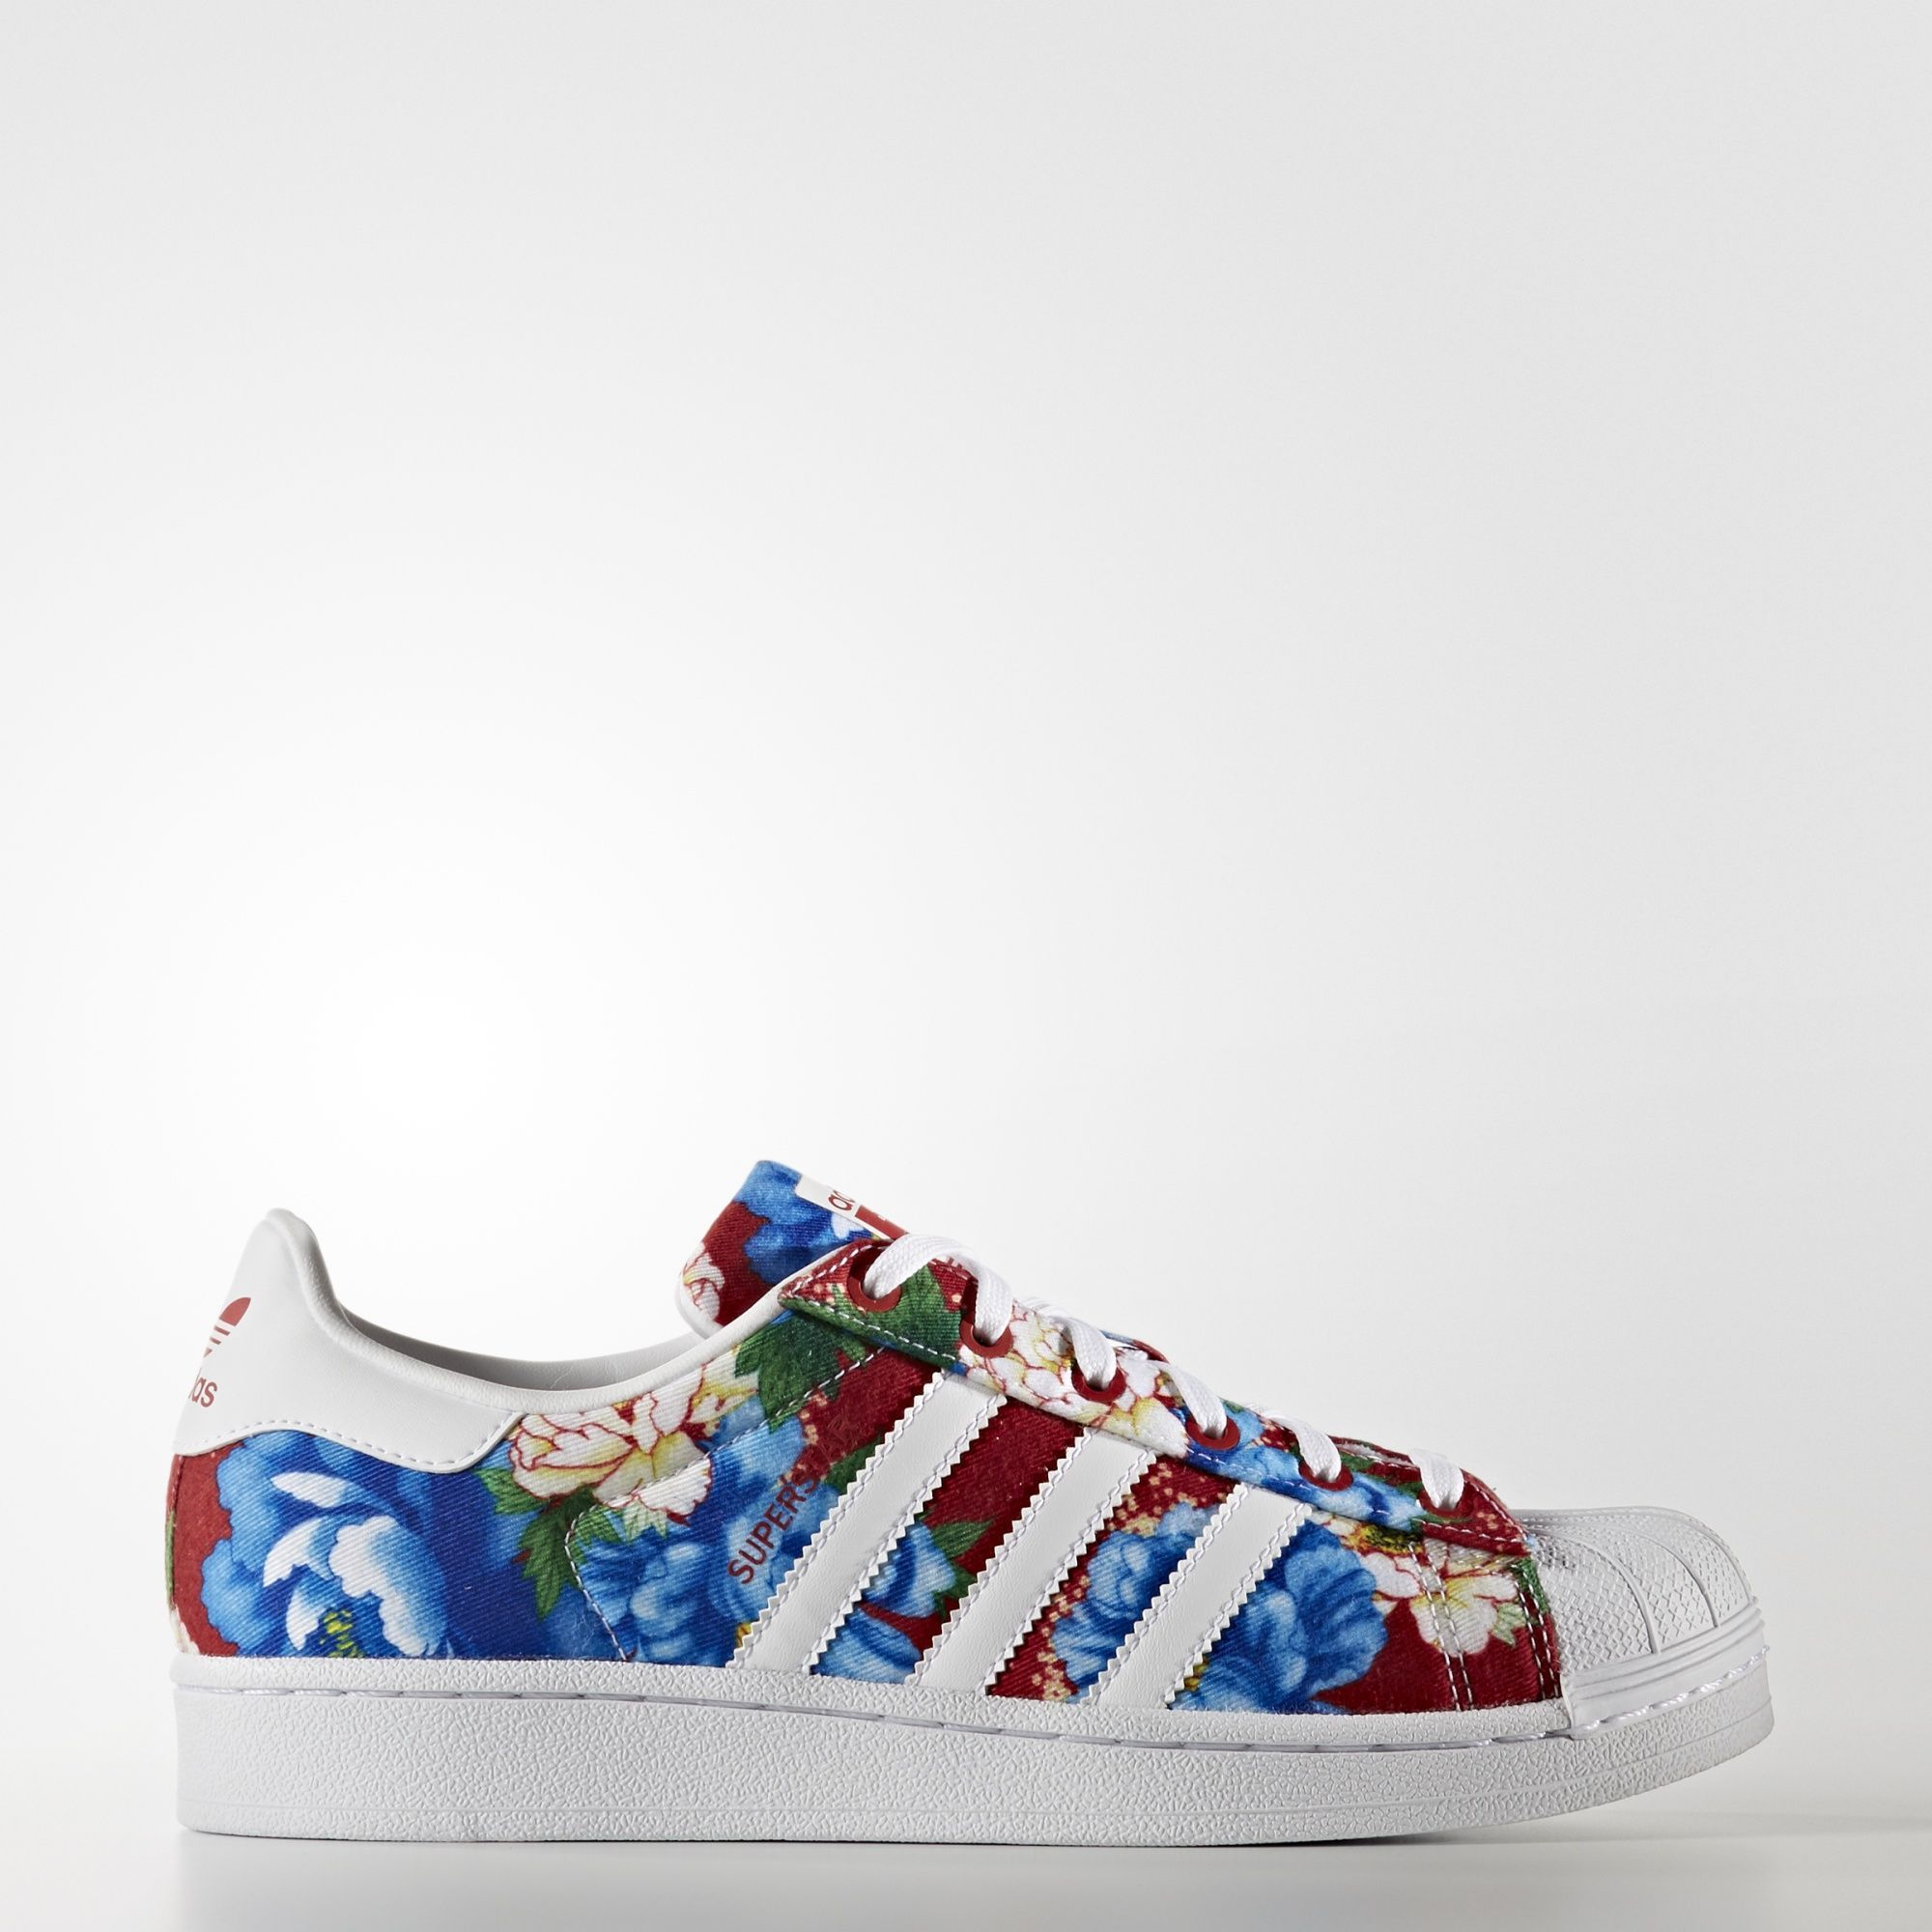 W1699Zapatillas Adidas Adidas Superstar Tenis Tenis Superstar W1699Zapatillas rxBCedoQW